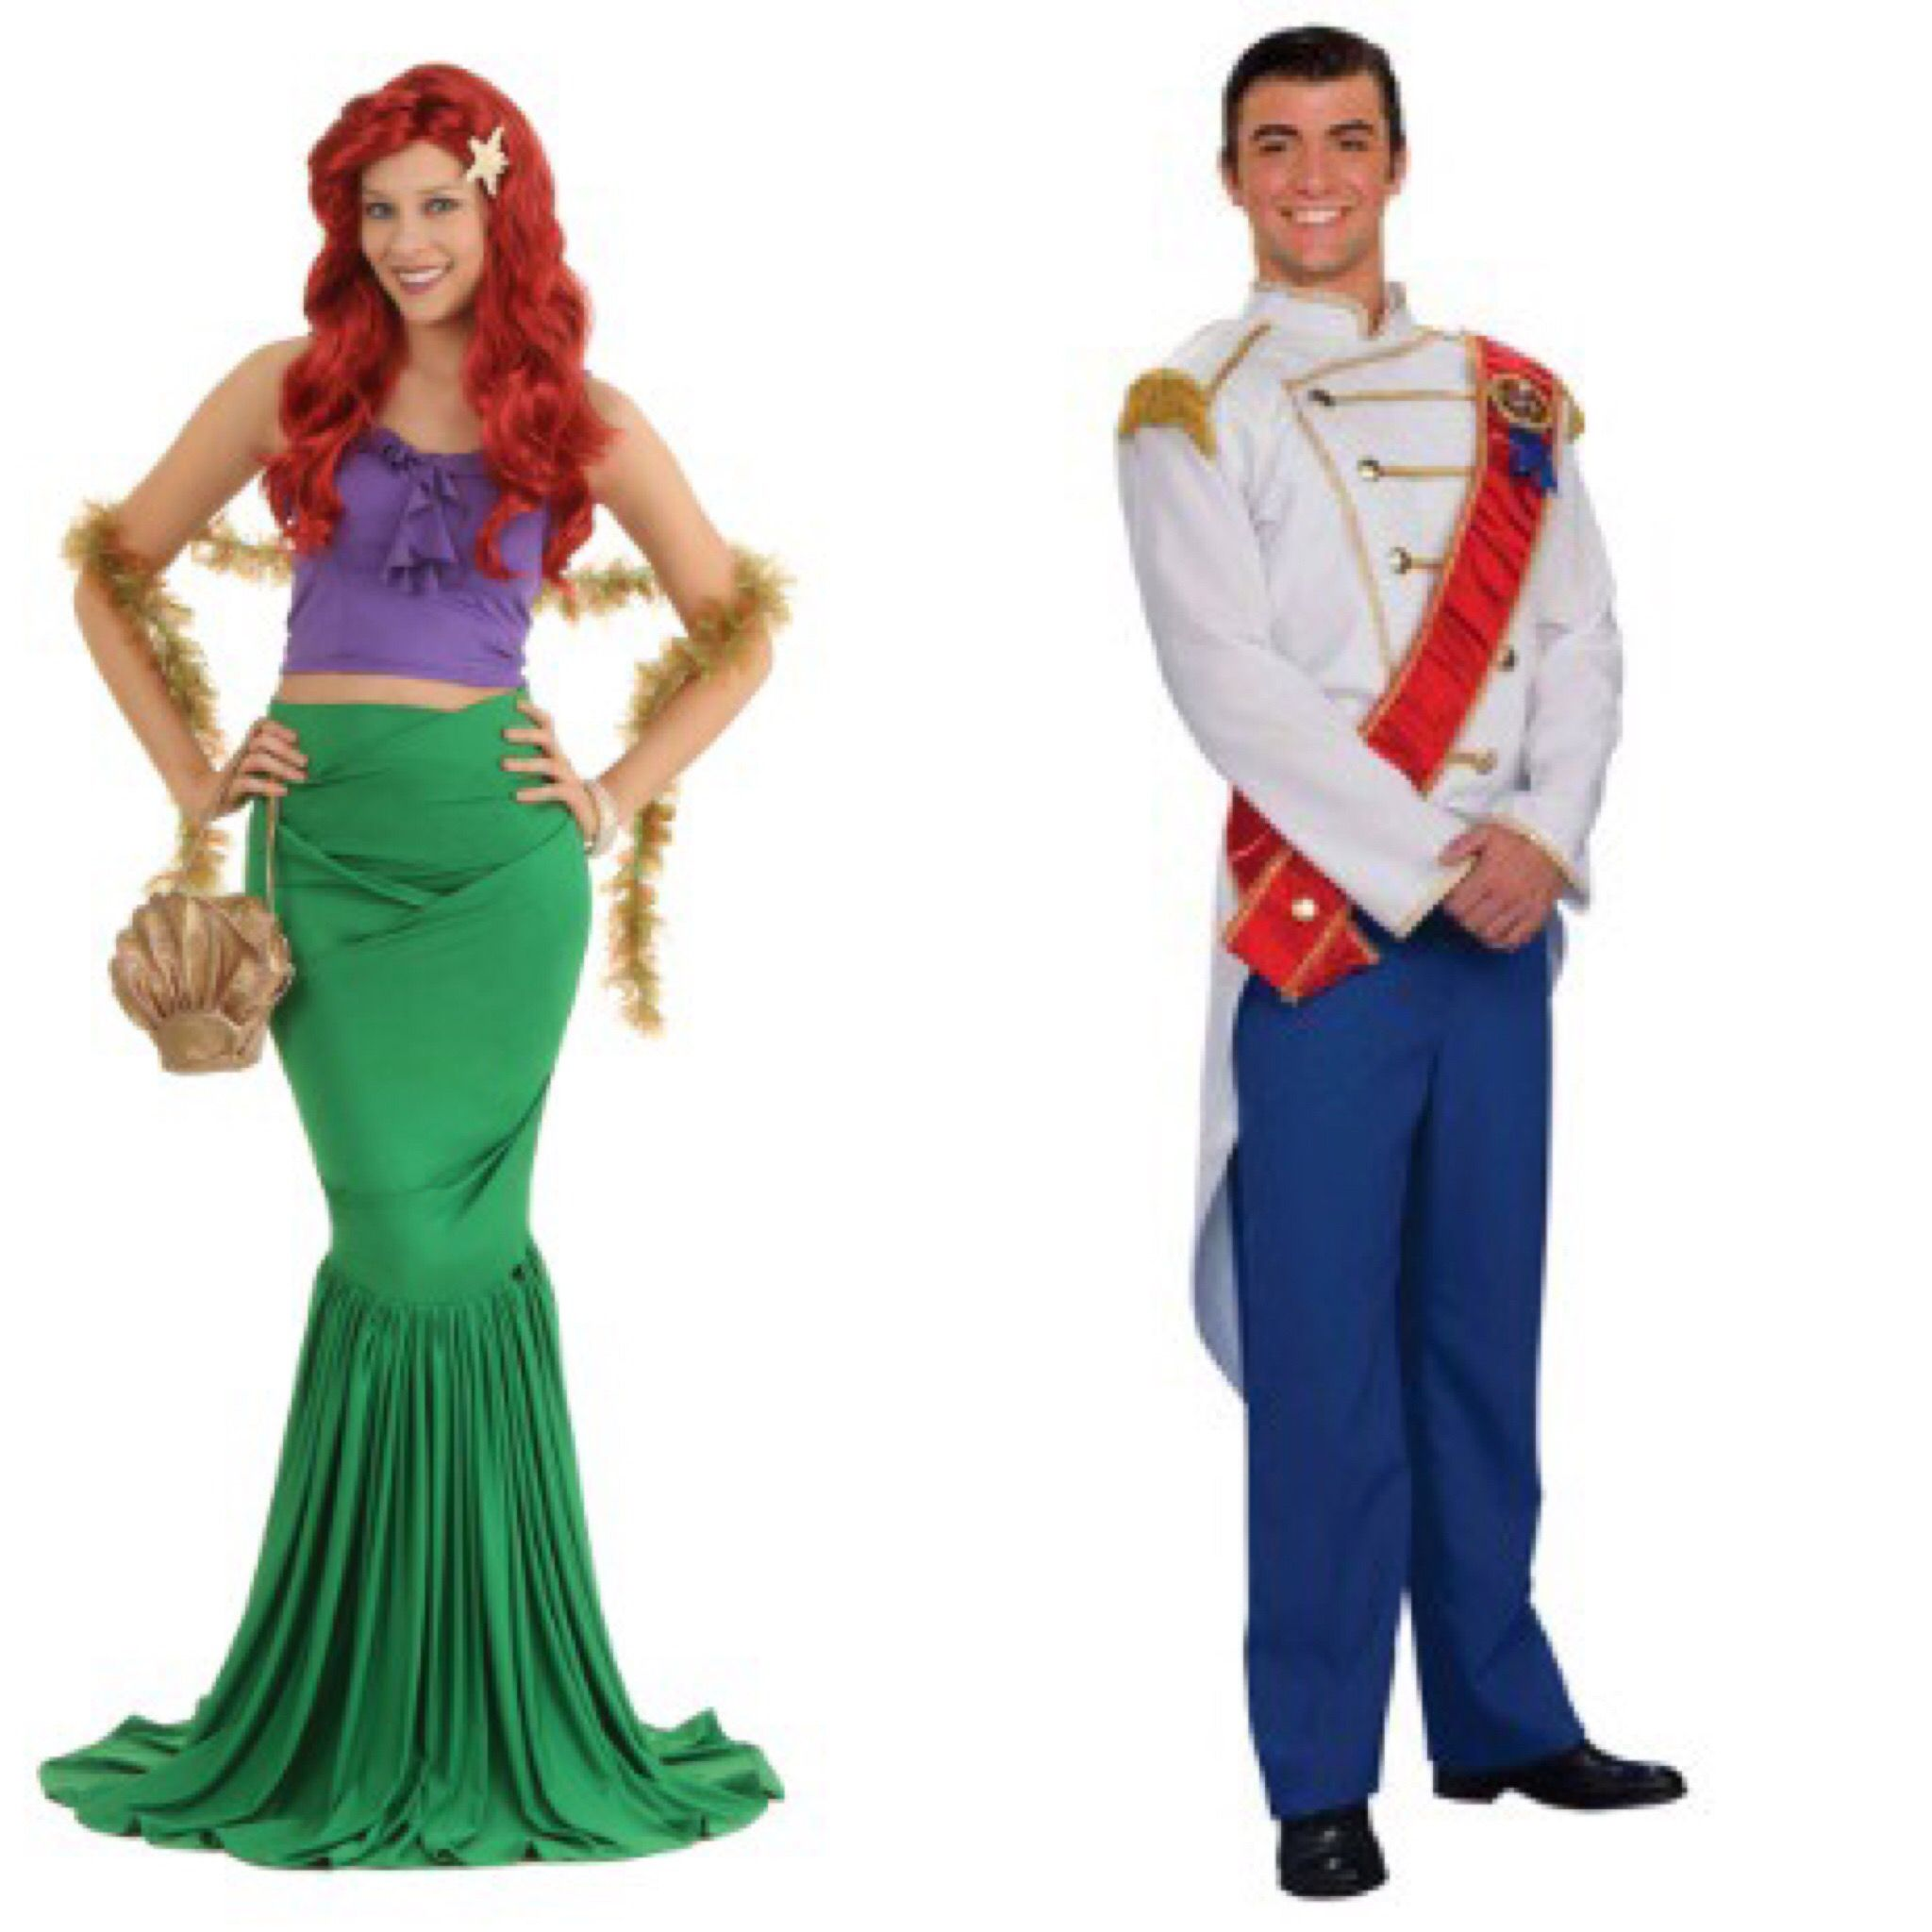 a0683cc6111f Ariel and Prince Eric costumes.